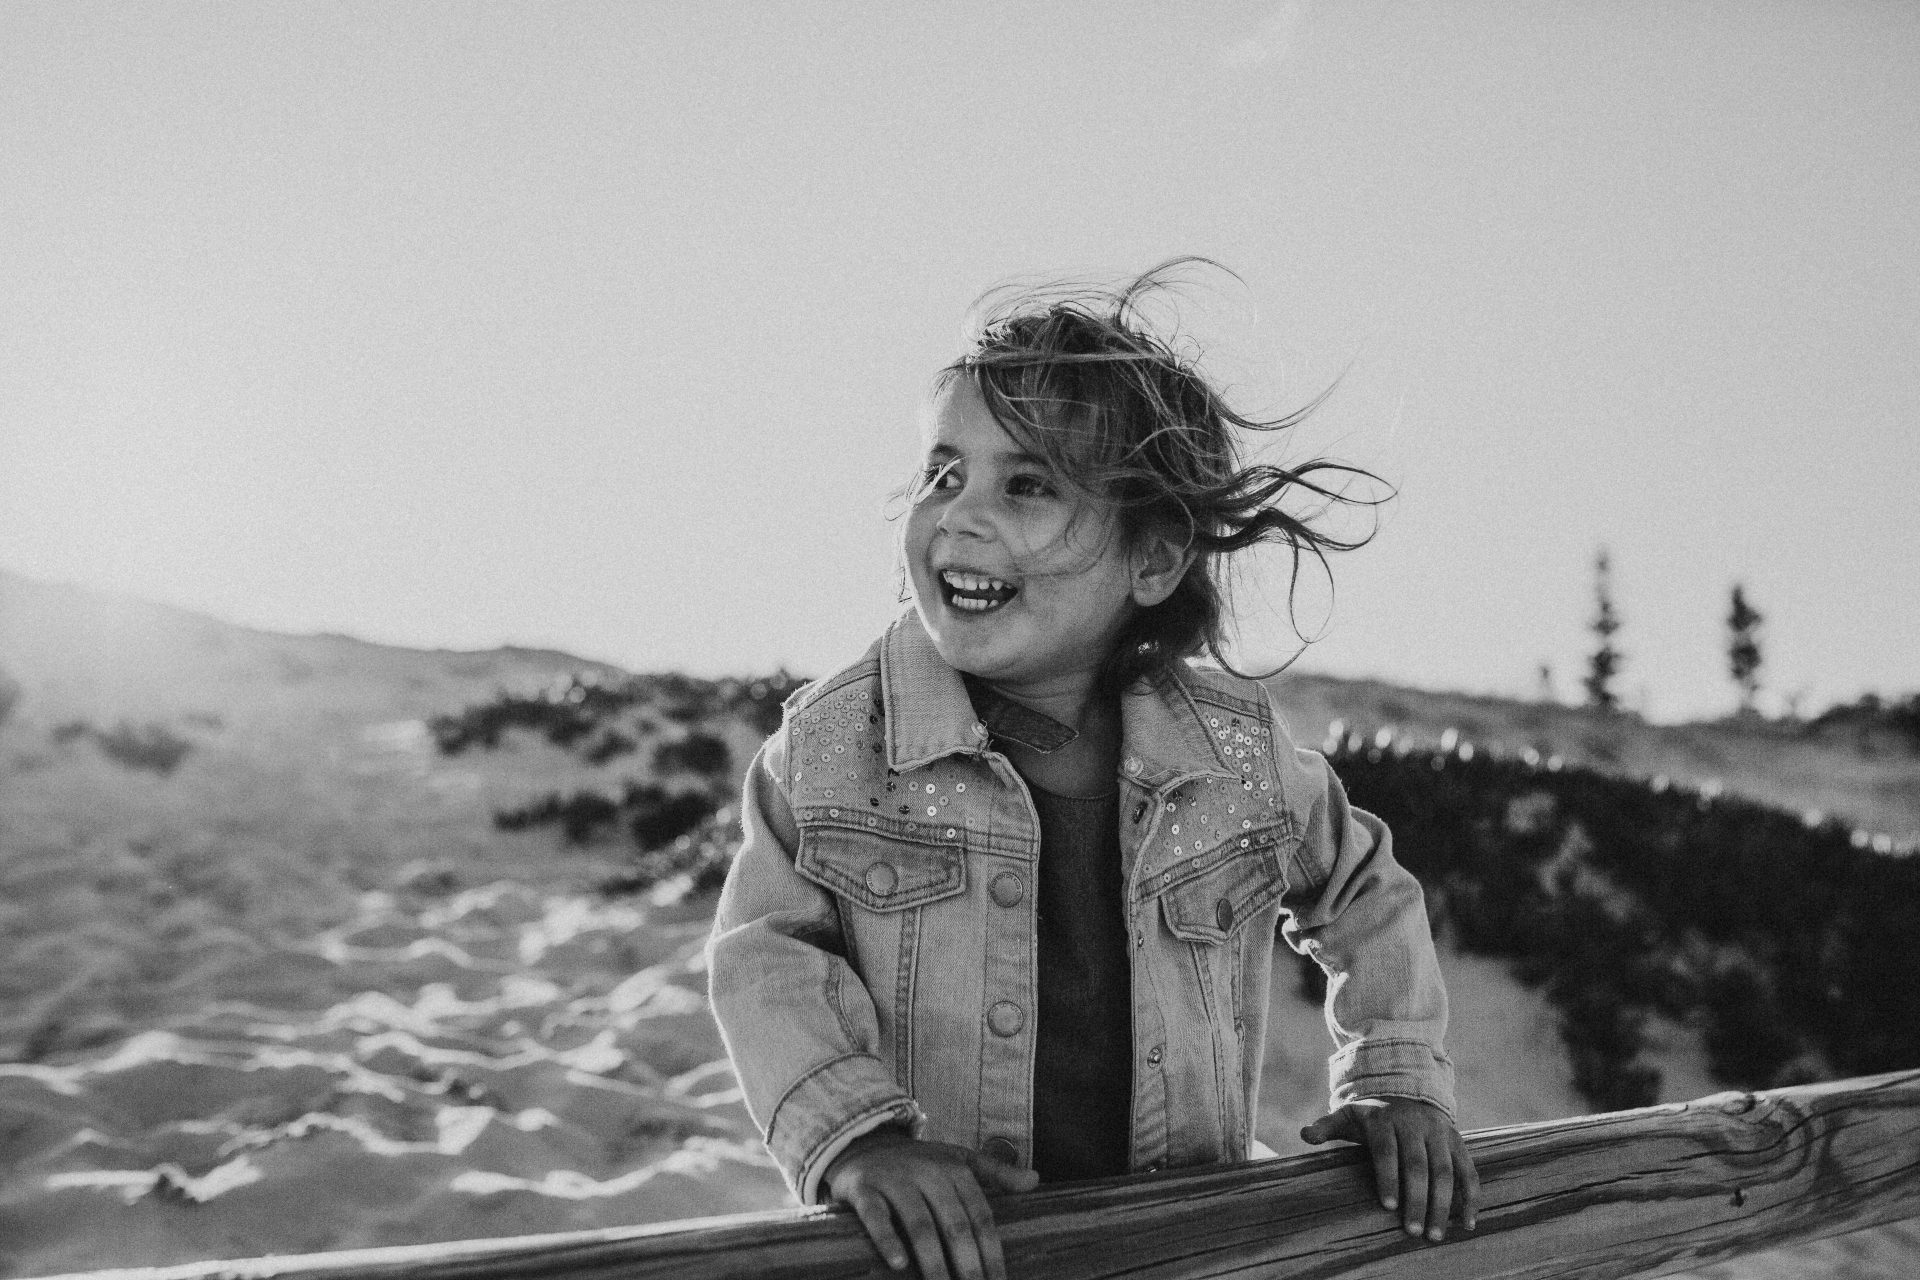 Black and white image of little girl in denim jacket, smiling with her hair blowing in the wind